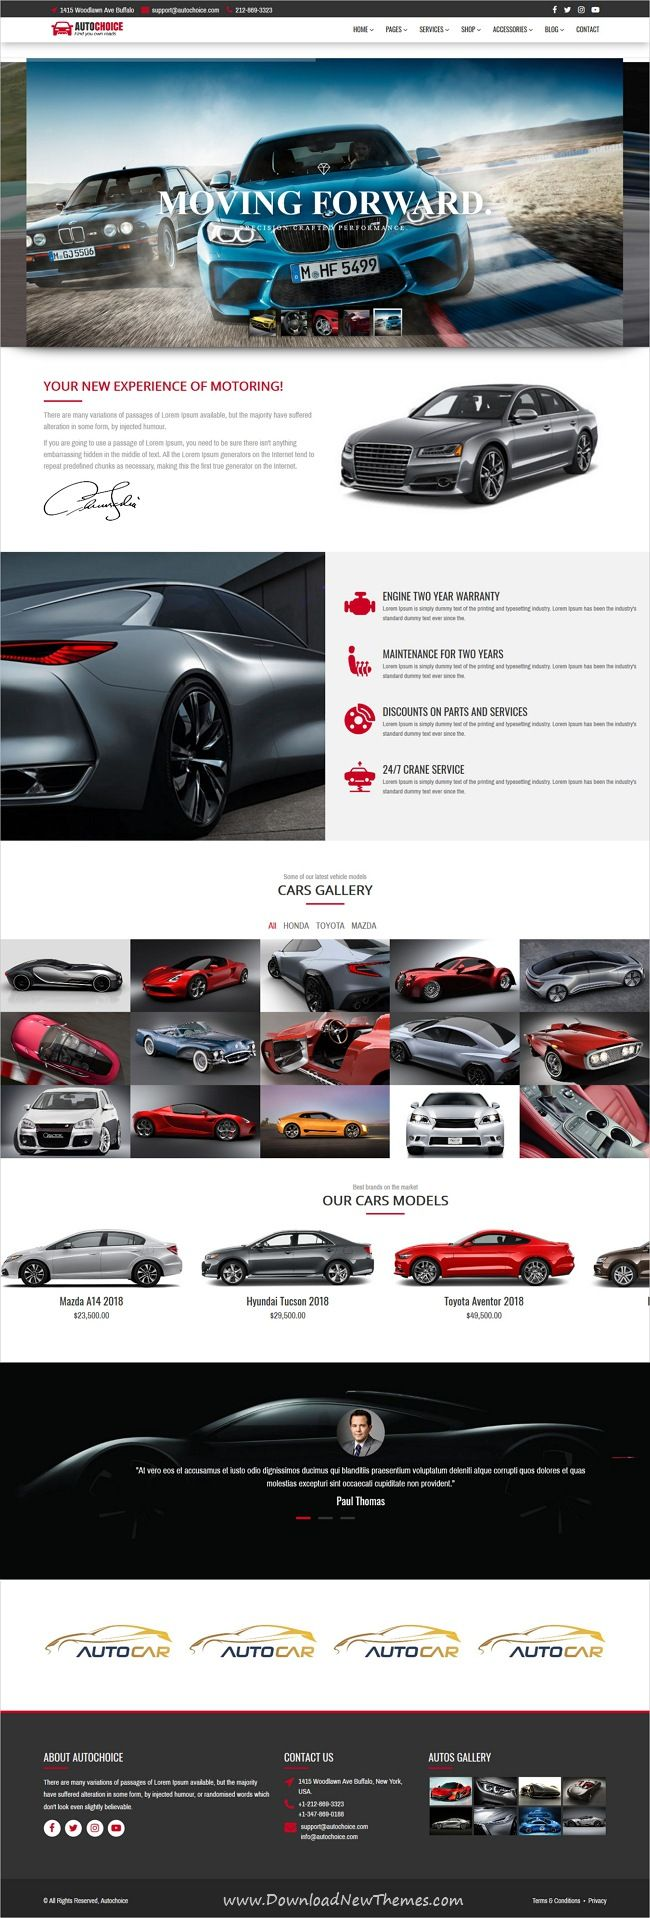 Autochoice Is Clean And Modern Design 8in1 Responsive Bootstrap Html5 Template For Premium Cars Automotive Dealership Business Website